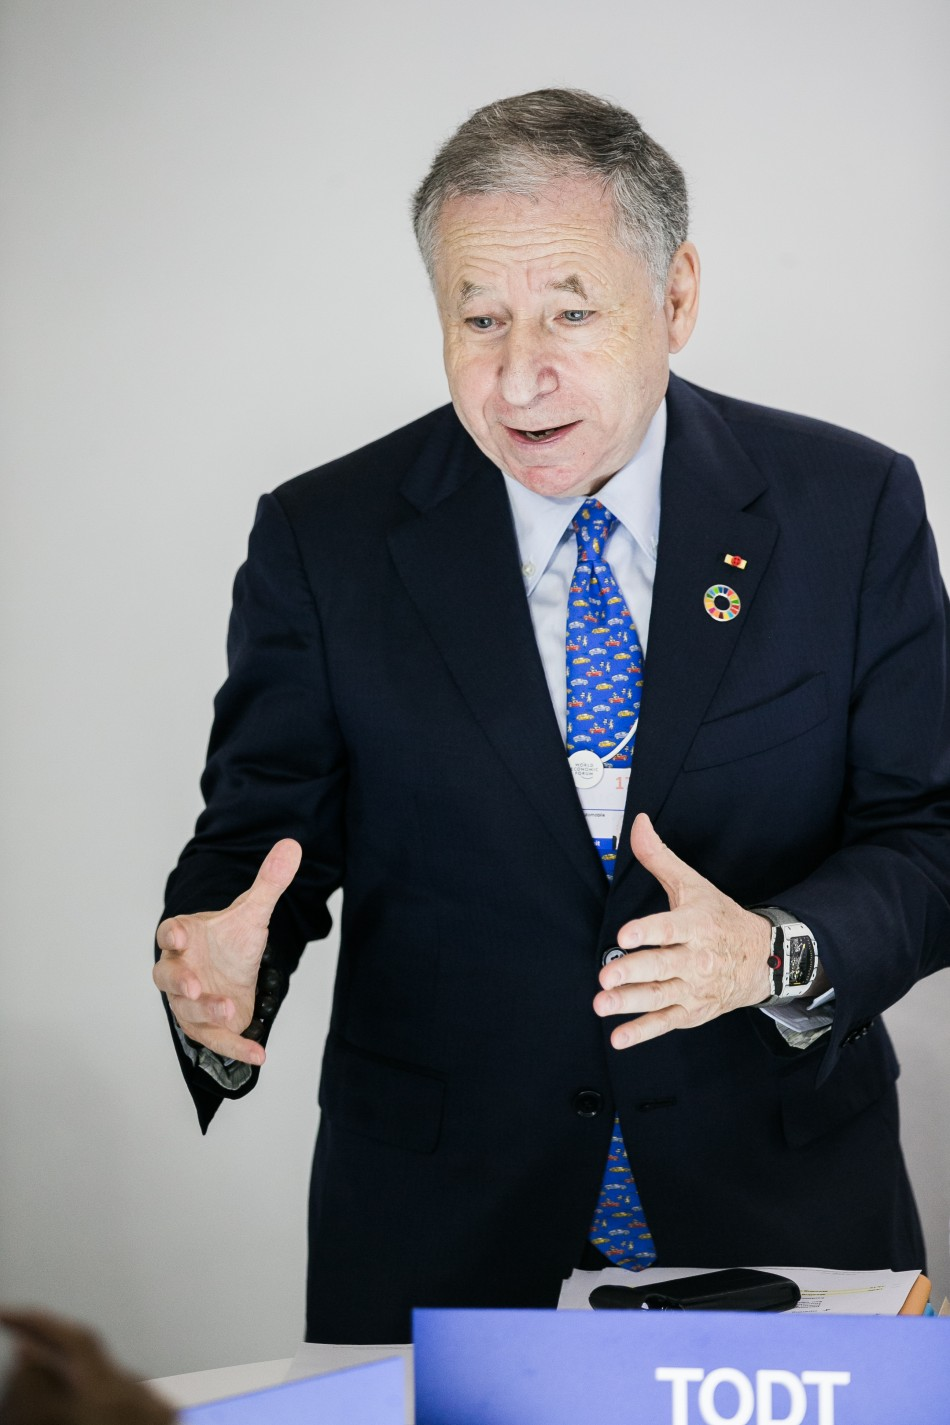 todt, wef, india, road safety